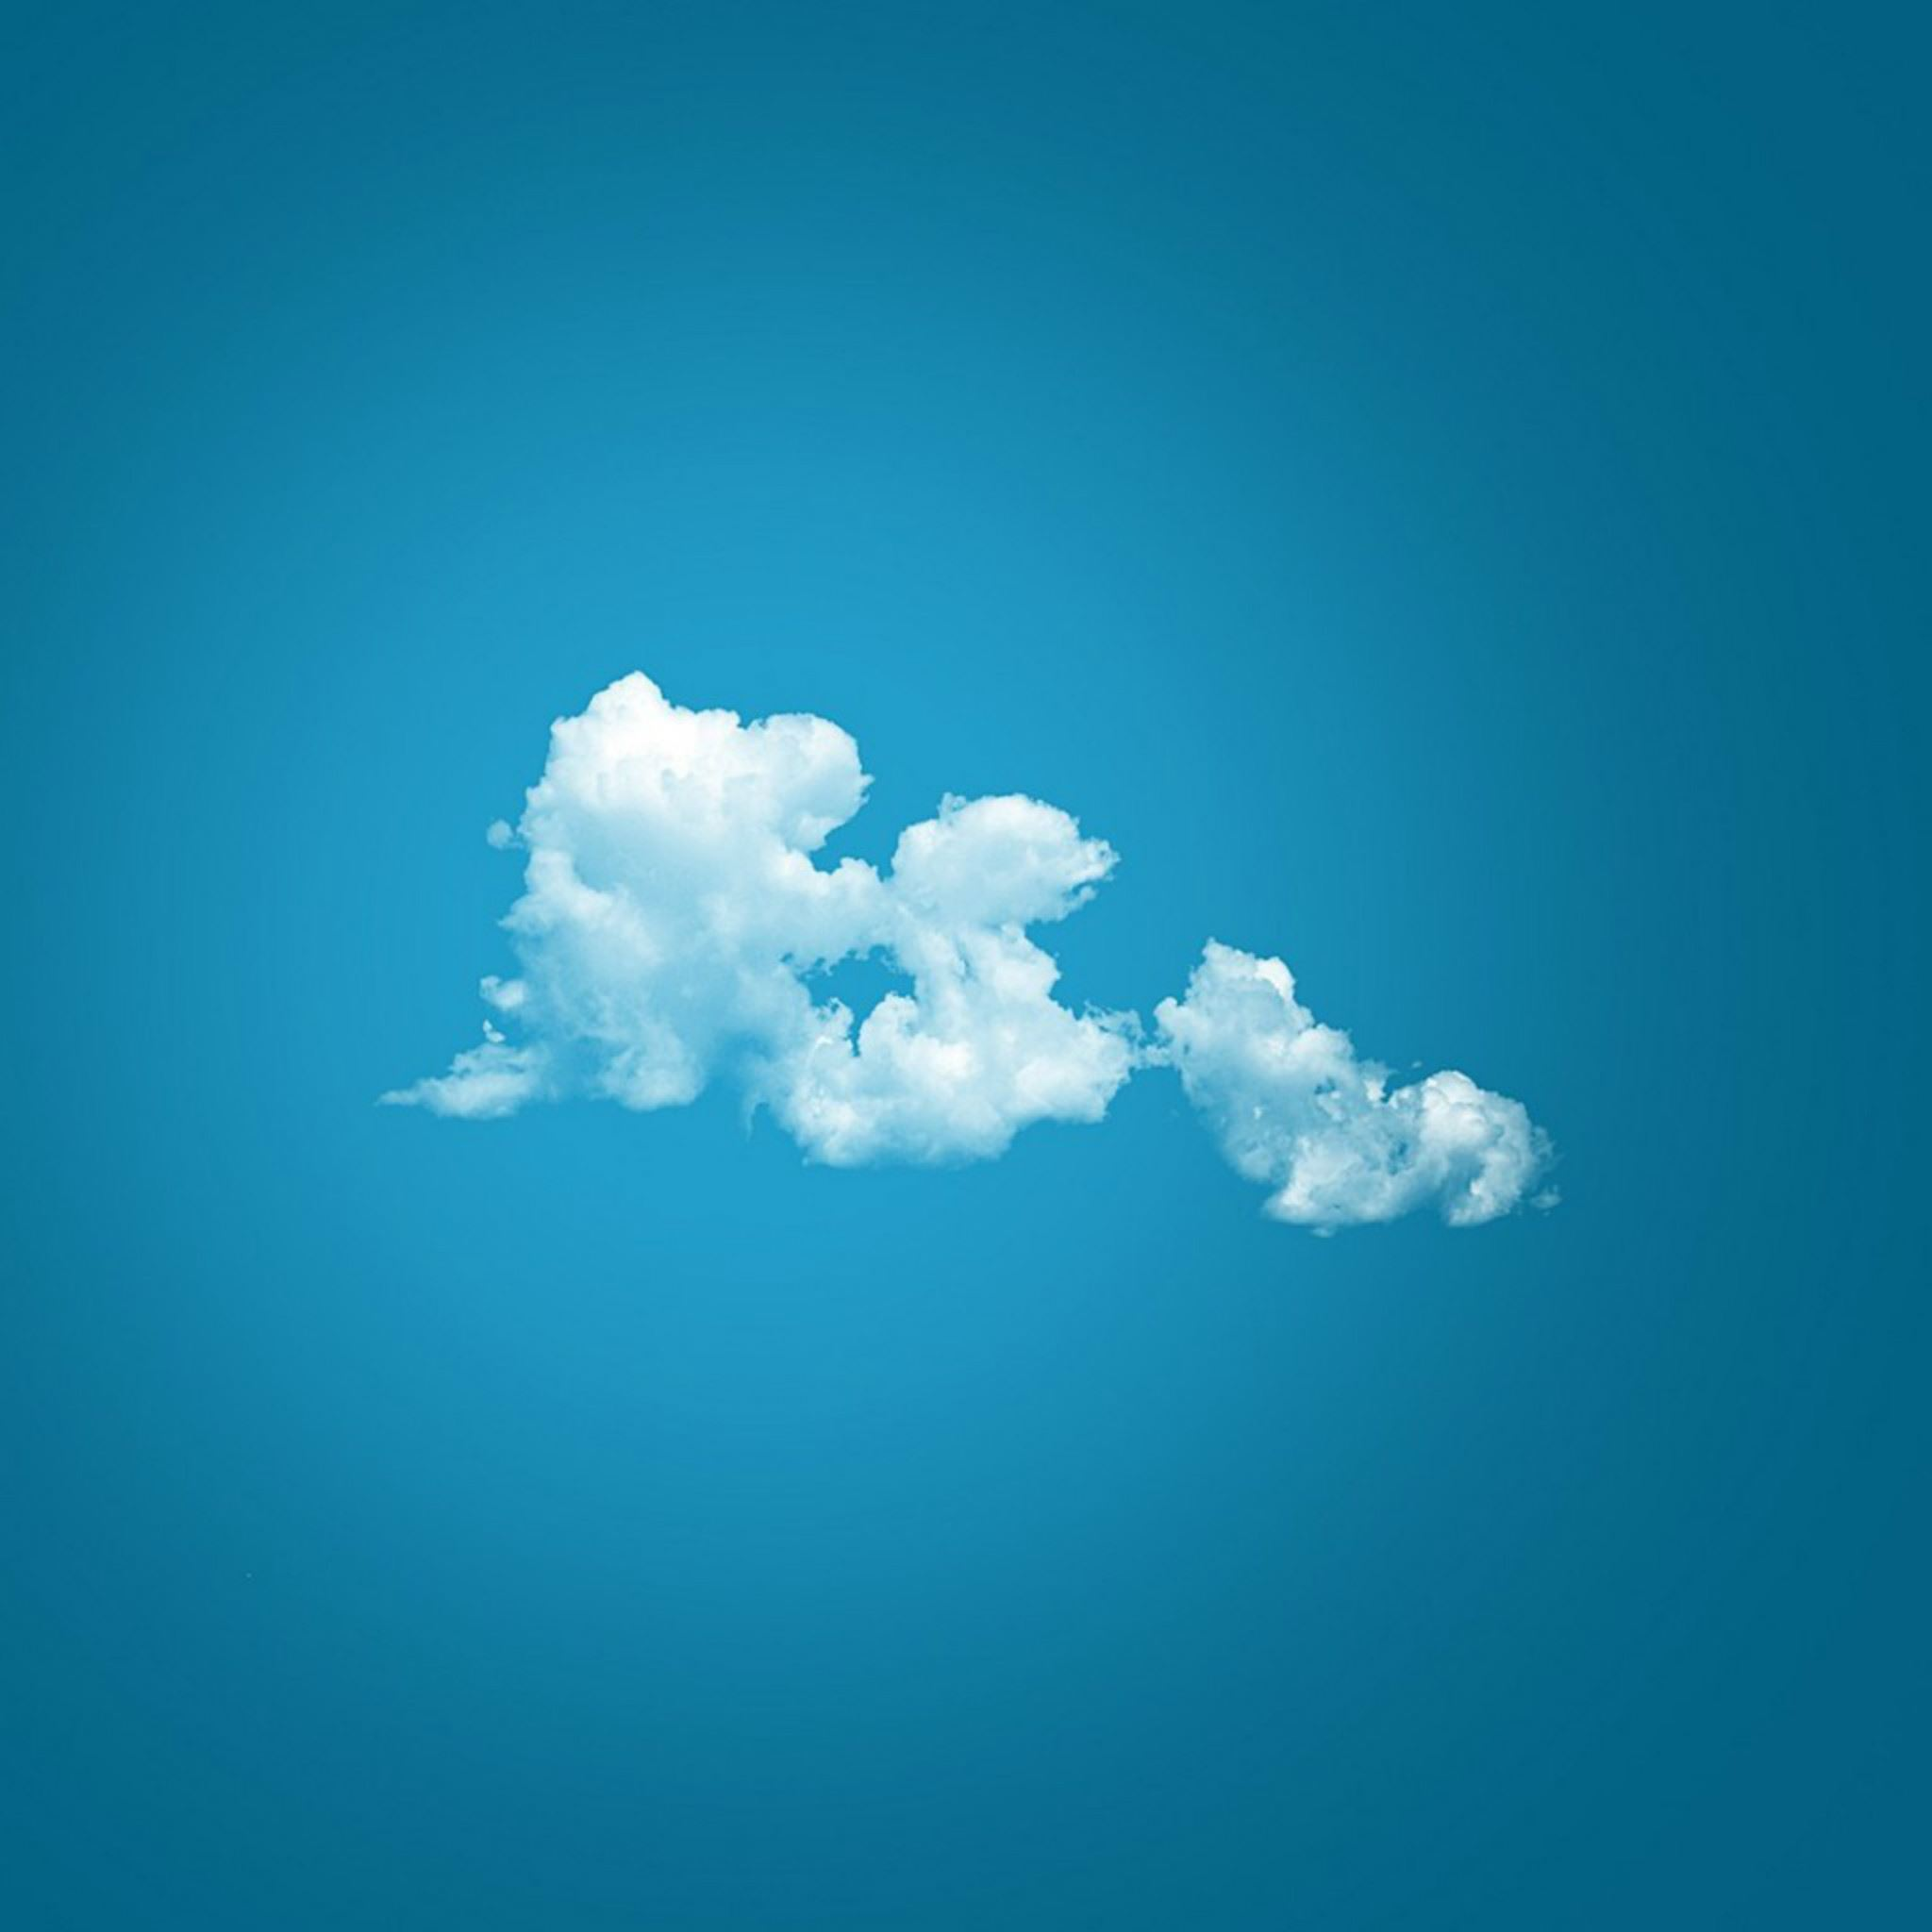 Fluffy Cloud on Blue Sky iPad Air wallpaper